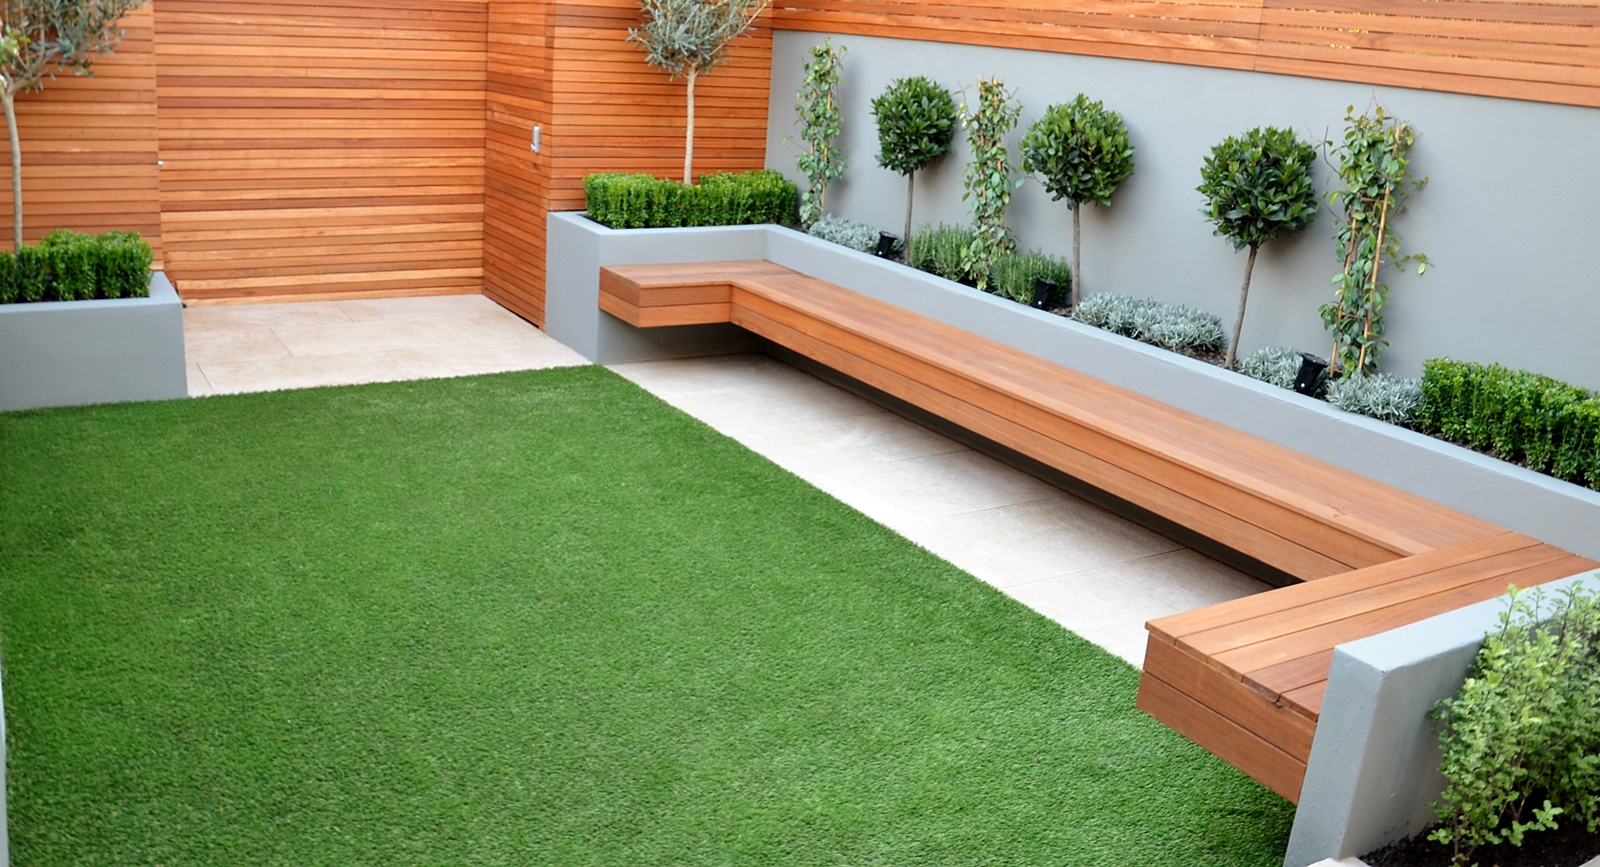 Urban garden design modern urban garden design ideas for Images of garden designs